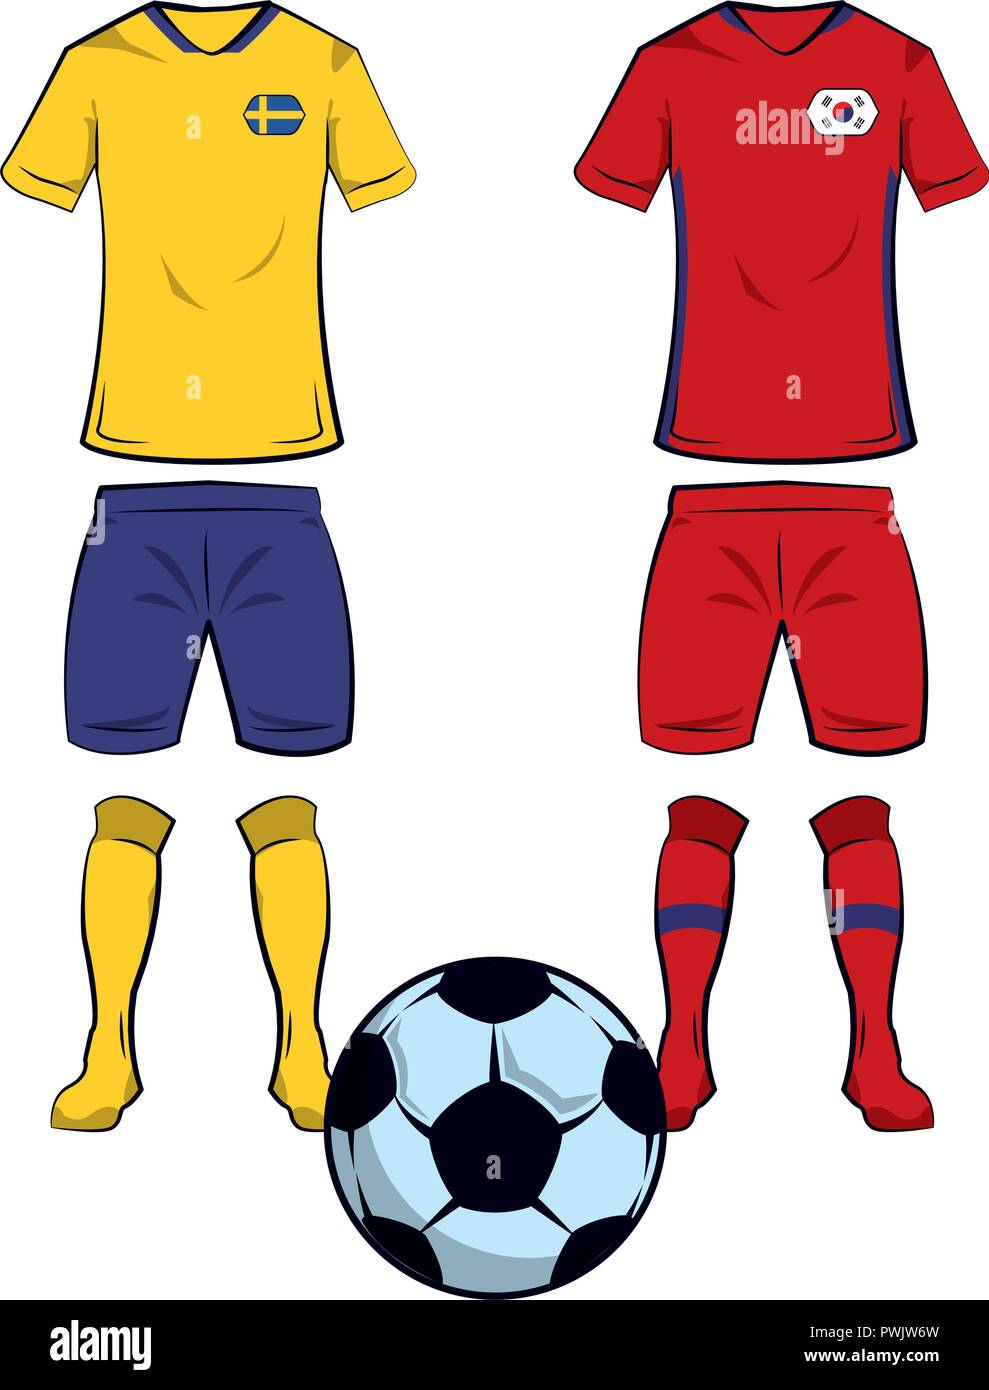 9c9c0bd42 Soccer sweden and south korea teams uniforms and ball vector illustration  graphic design